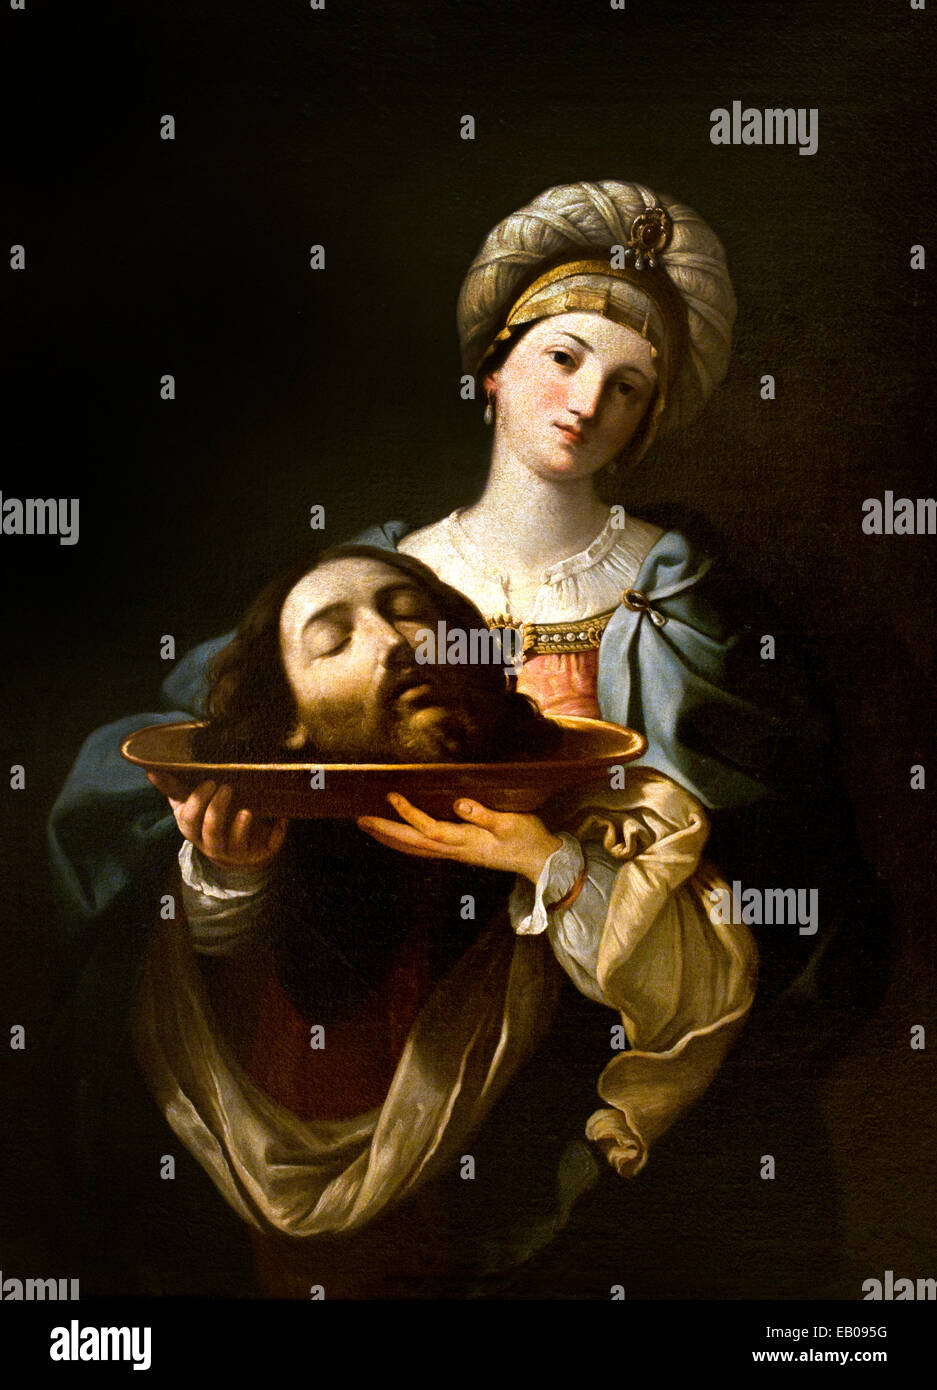 Bible Quotes About St John The Baptist: Salome With Saint John The Baptist `s Head On A Tray